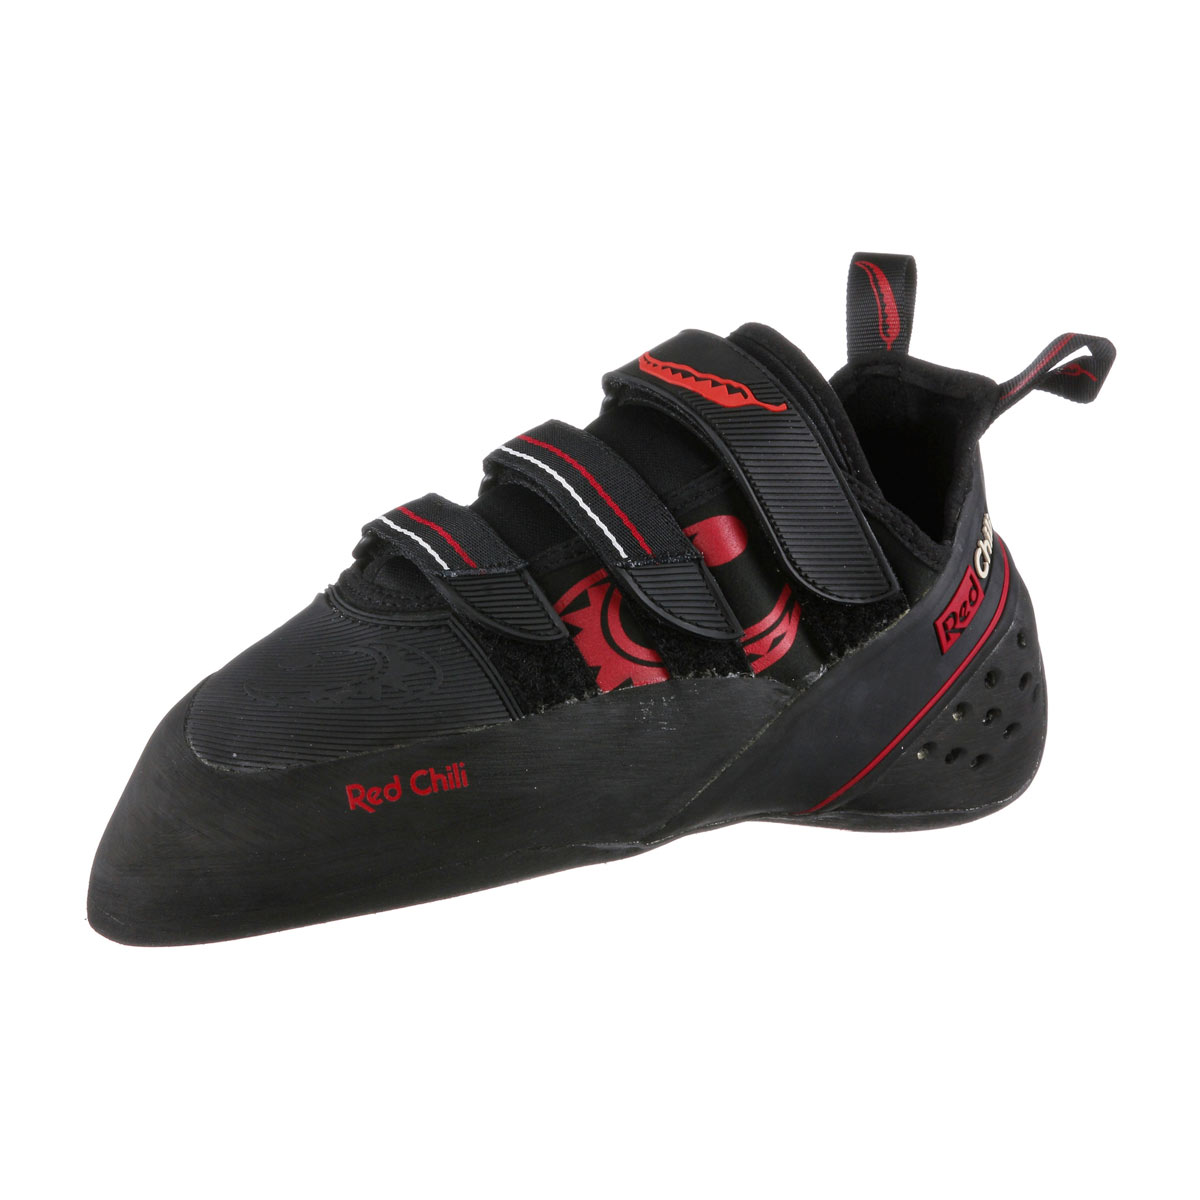 2b1514404040e0 Red Chili Matador Climbing Shoe